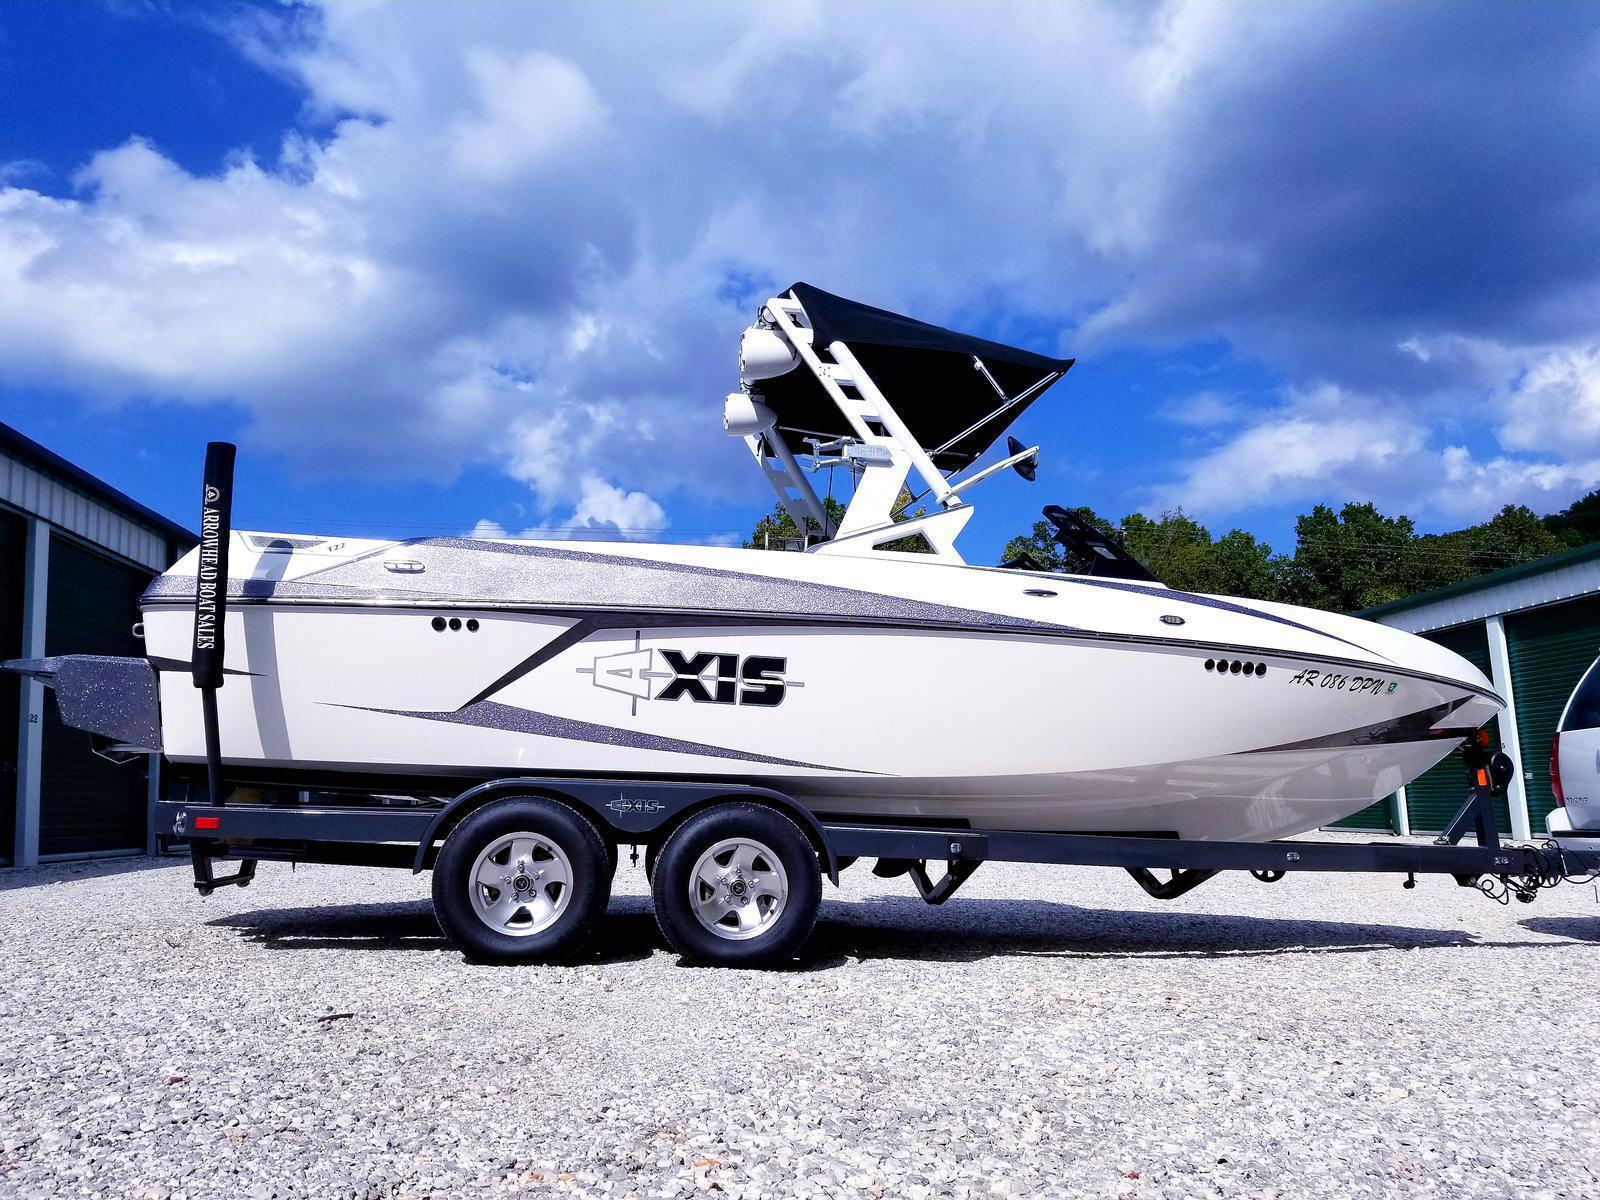 Inventory from Axis Wake Research, Fantasy, Beachcombe and